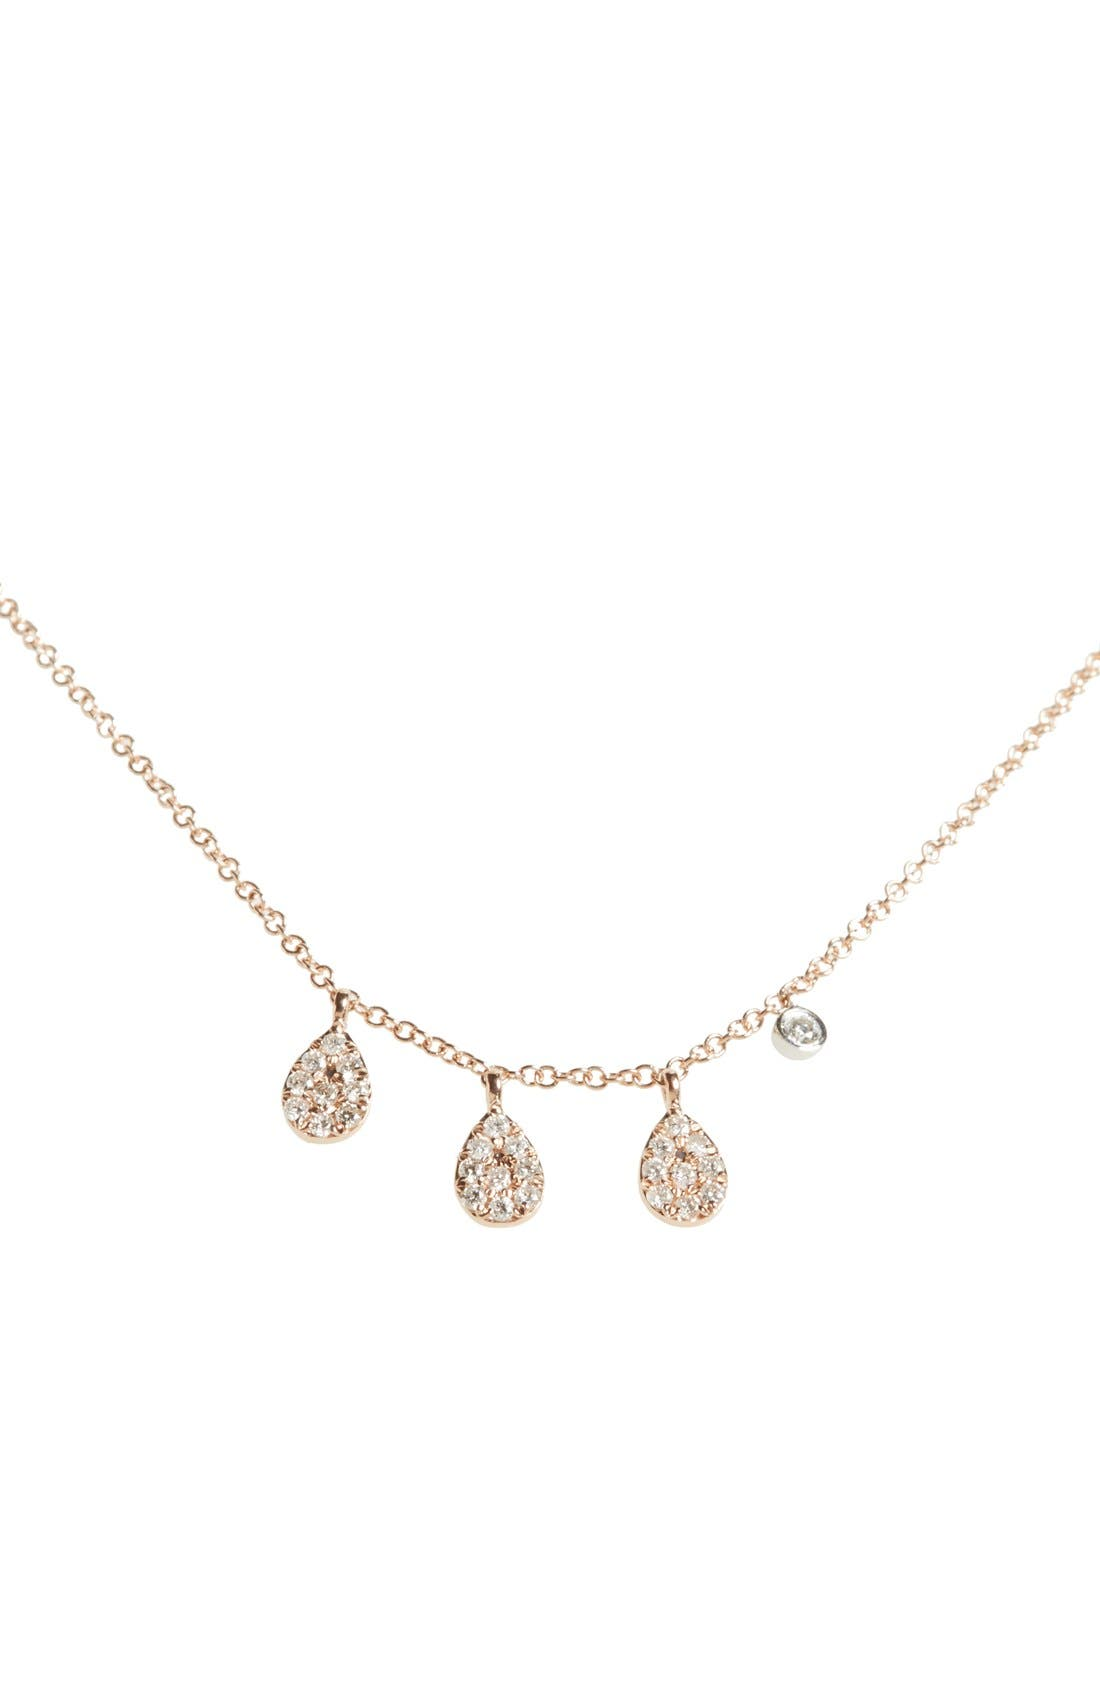 MEIRA T MeiraT Teardrop Pendant Necklace